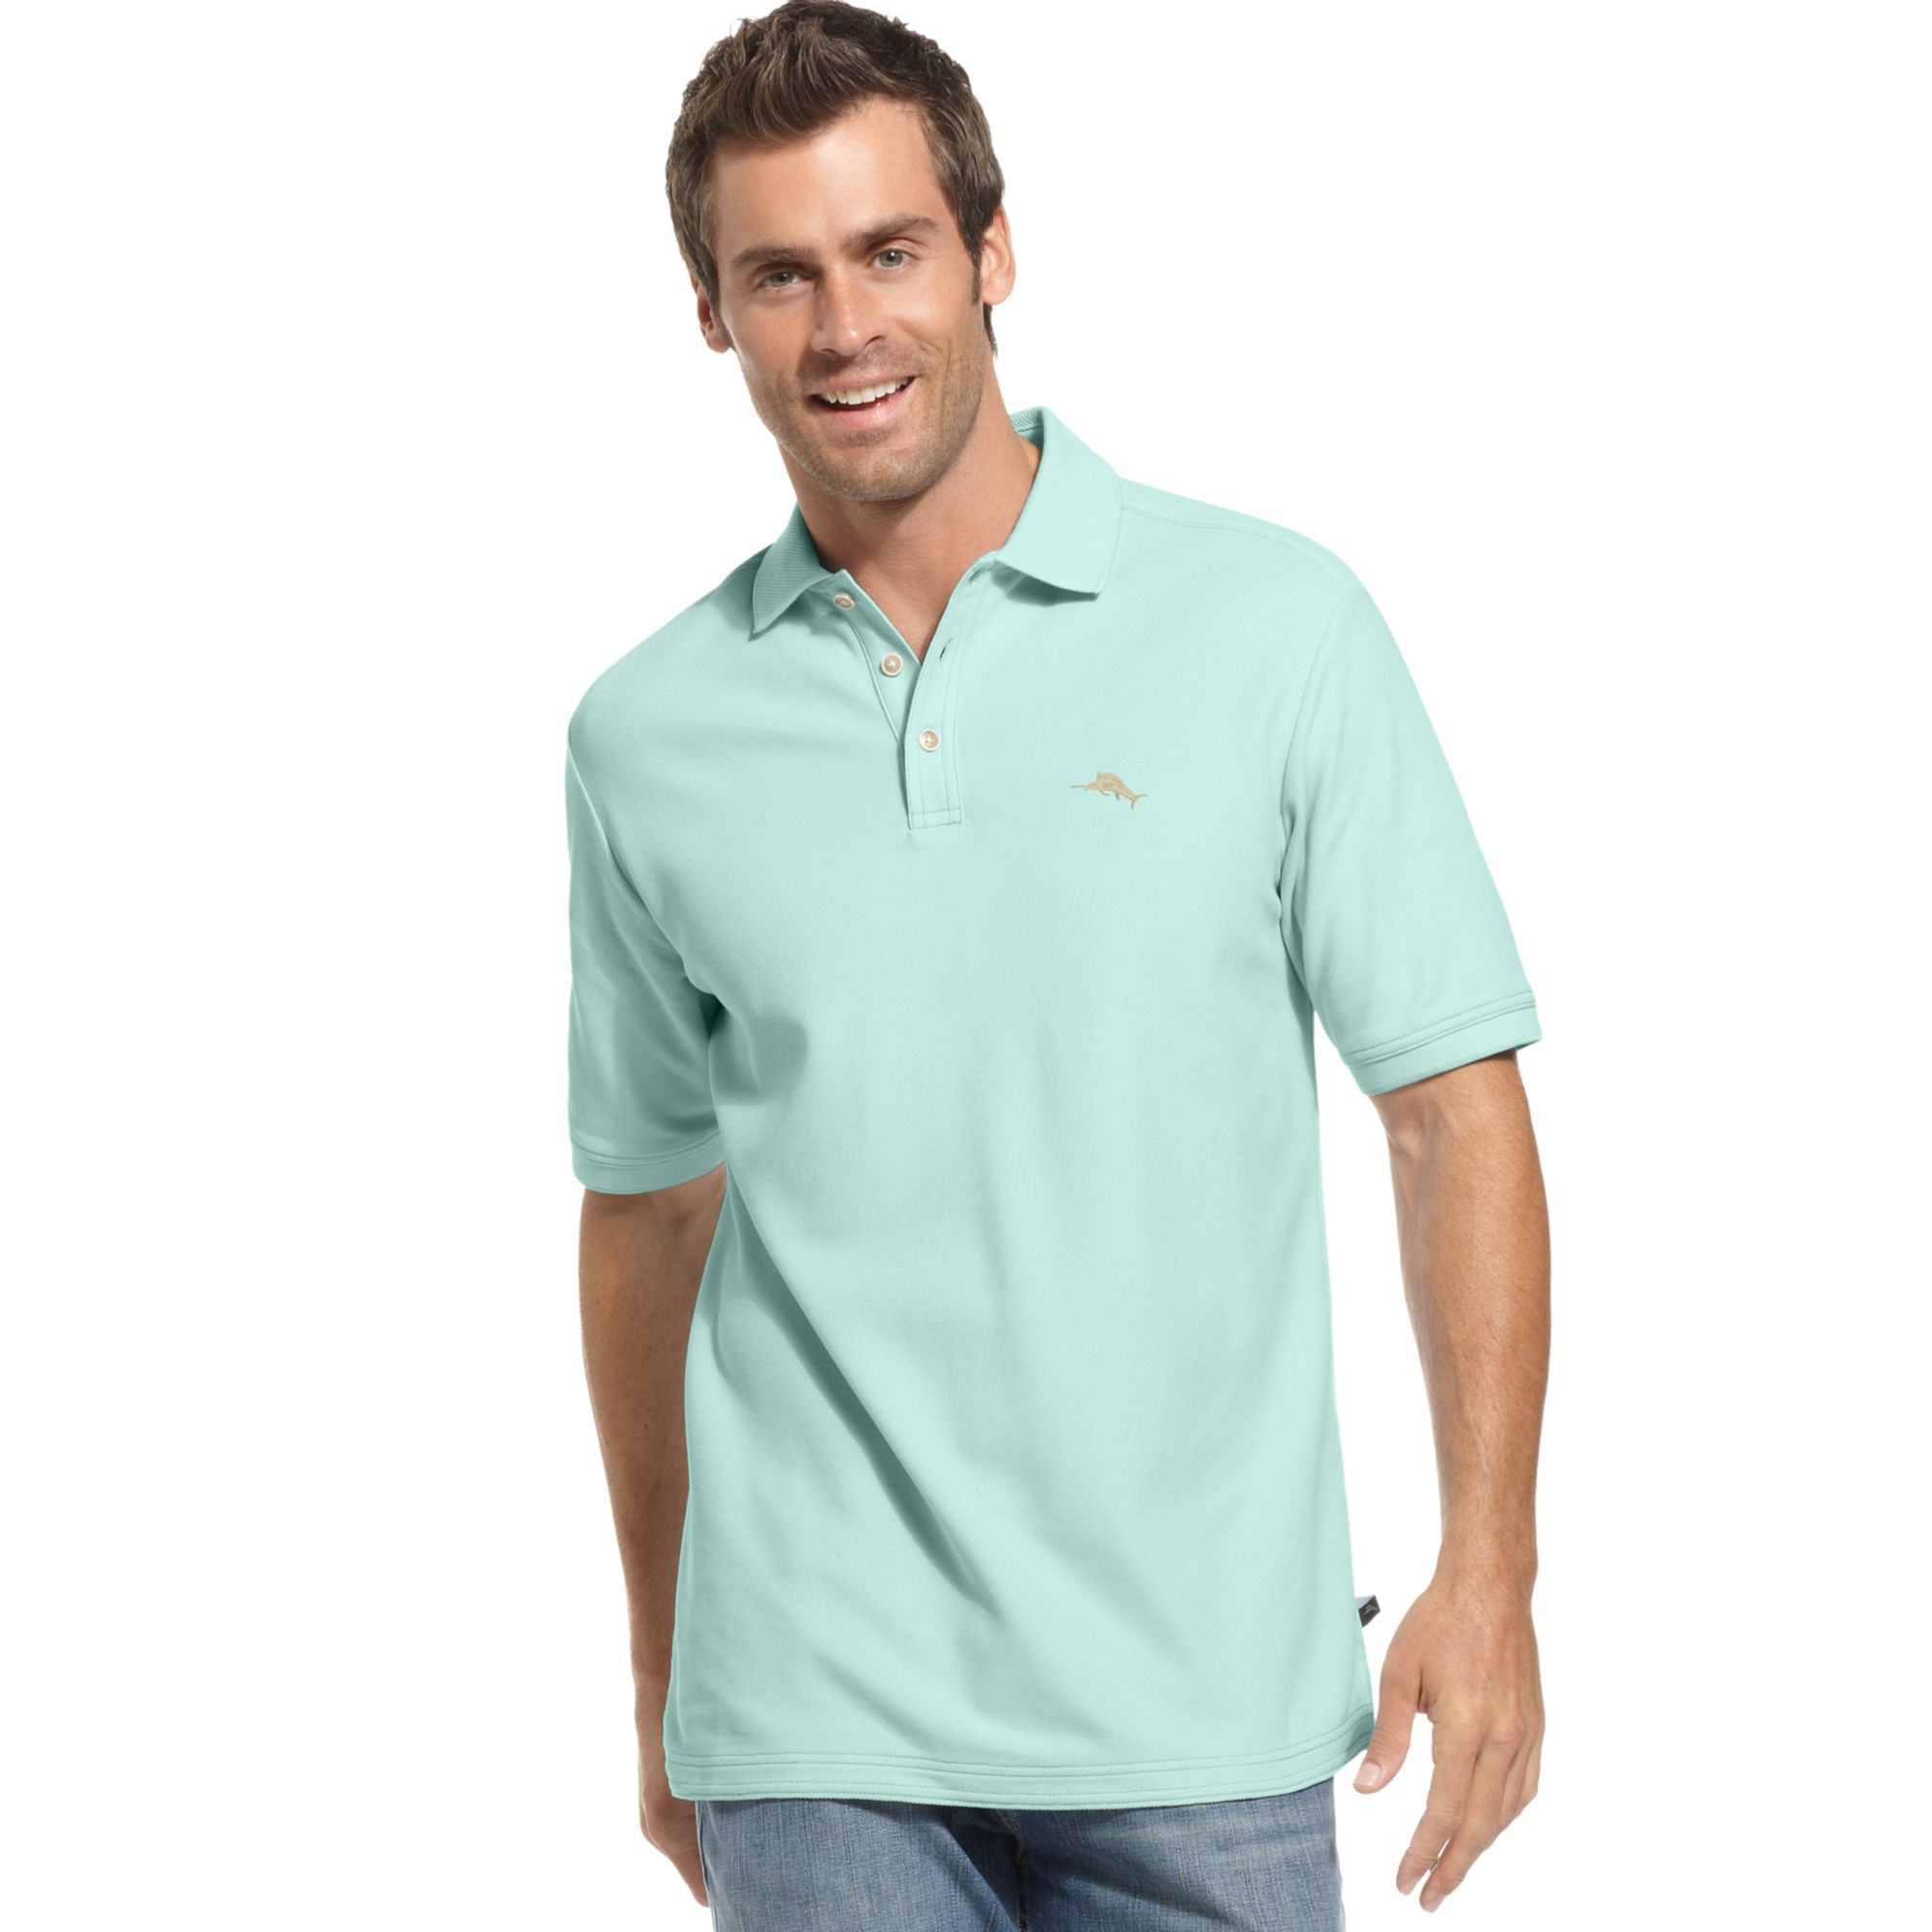 Tommy Bahama Emfielder Polo Shirt In Green For Men Icicle